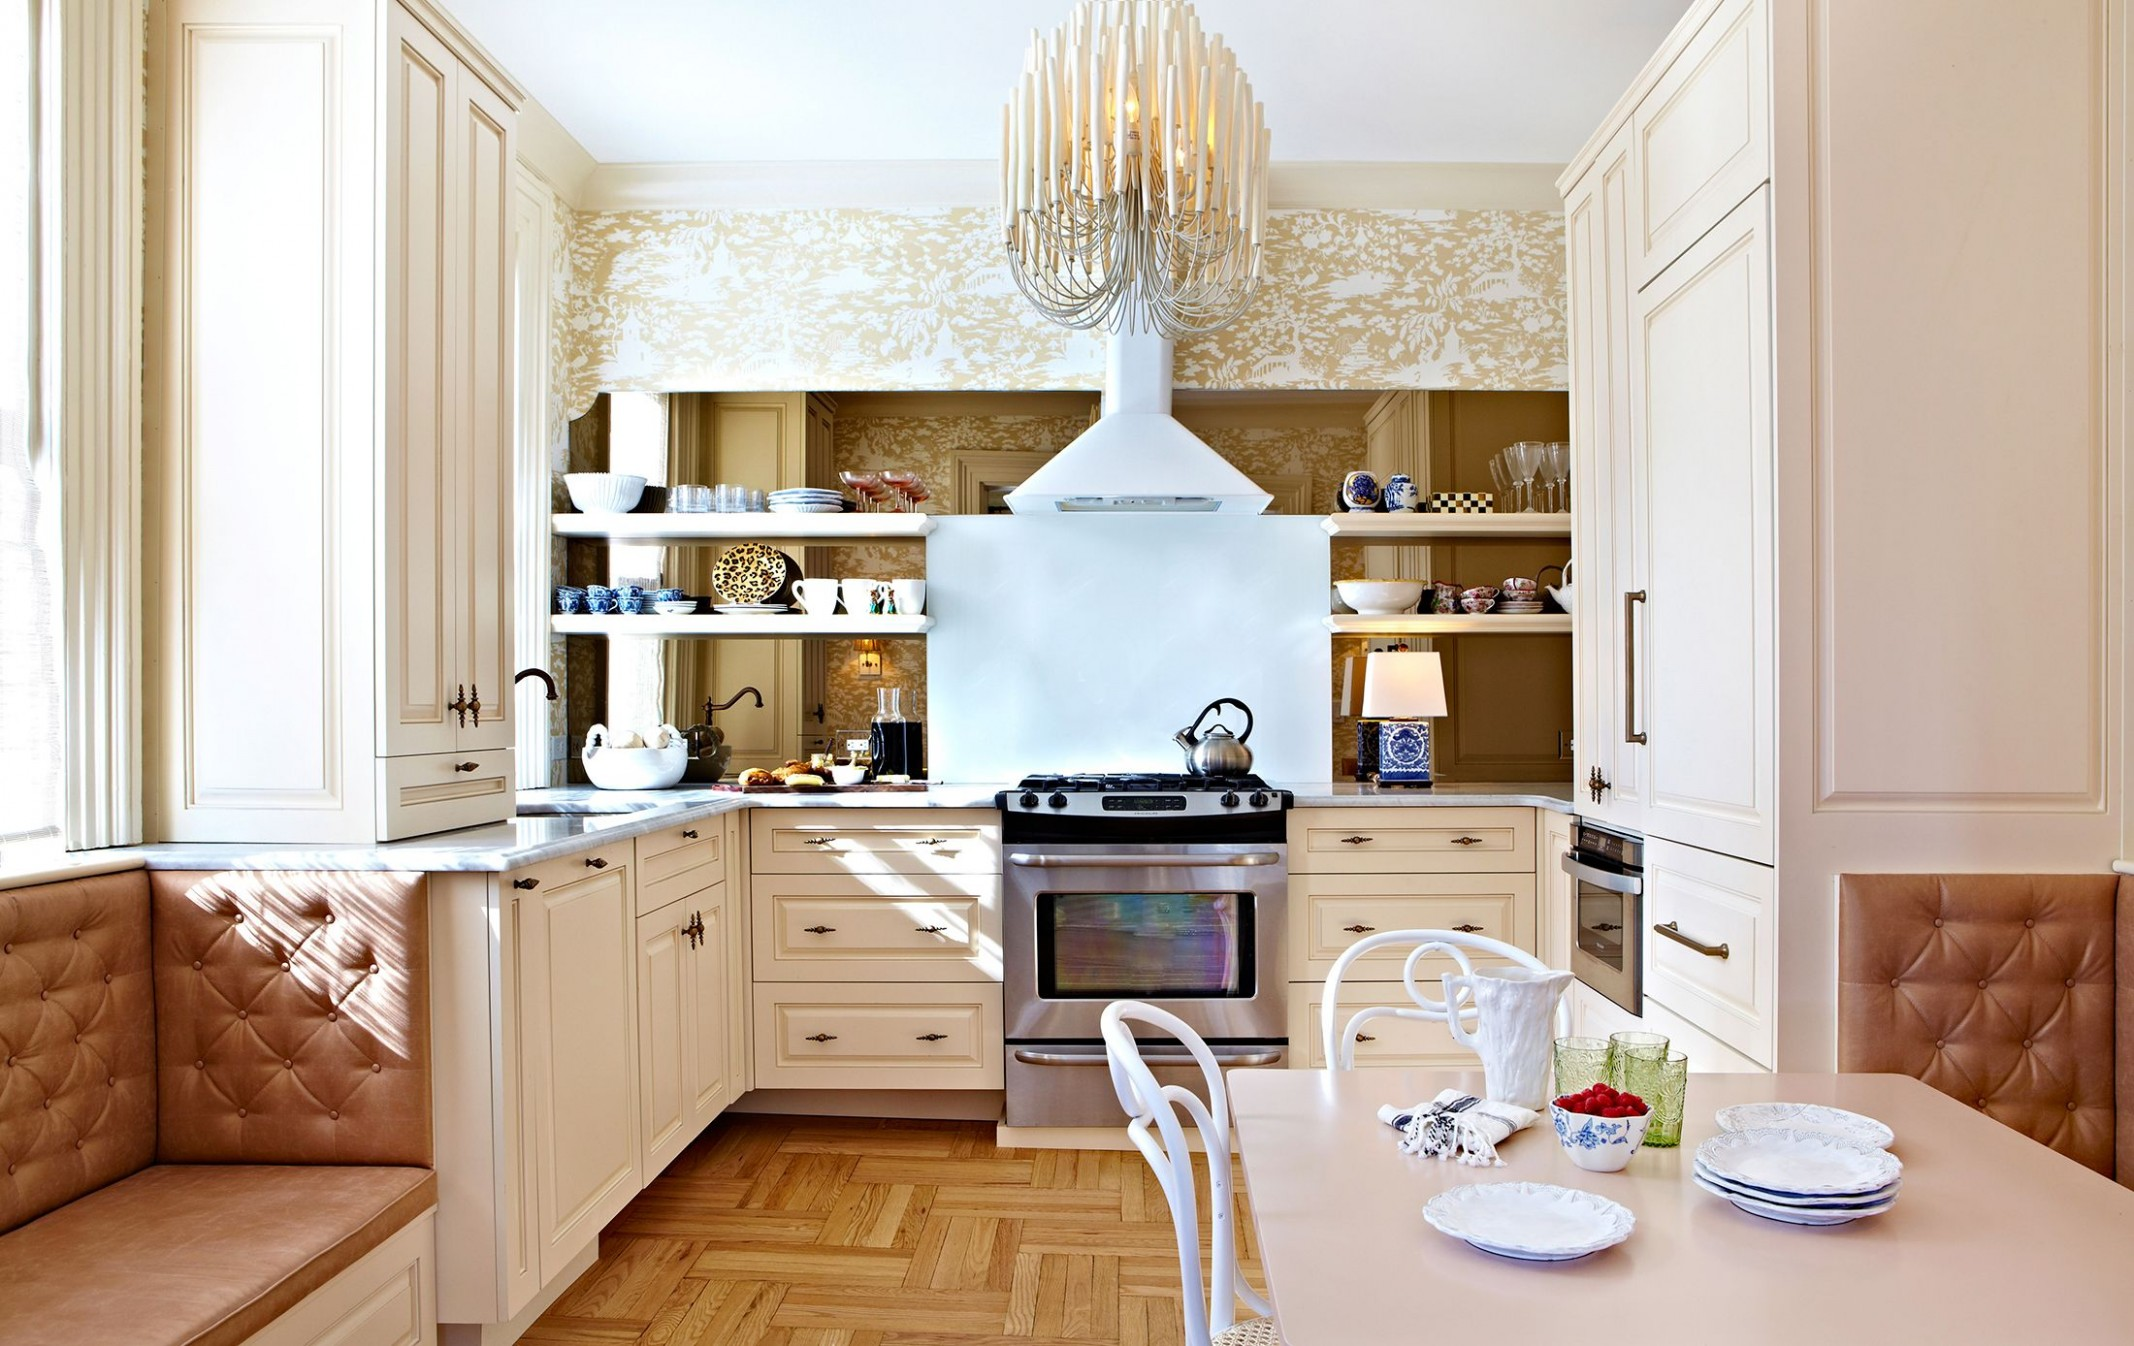 9 Best Small Kitchen Design Ideas - Decor Solutions for Small  - Bedroom Kitchen Ideas